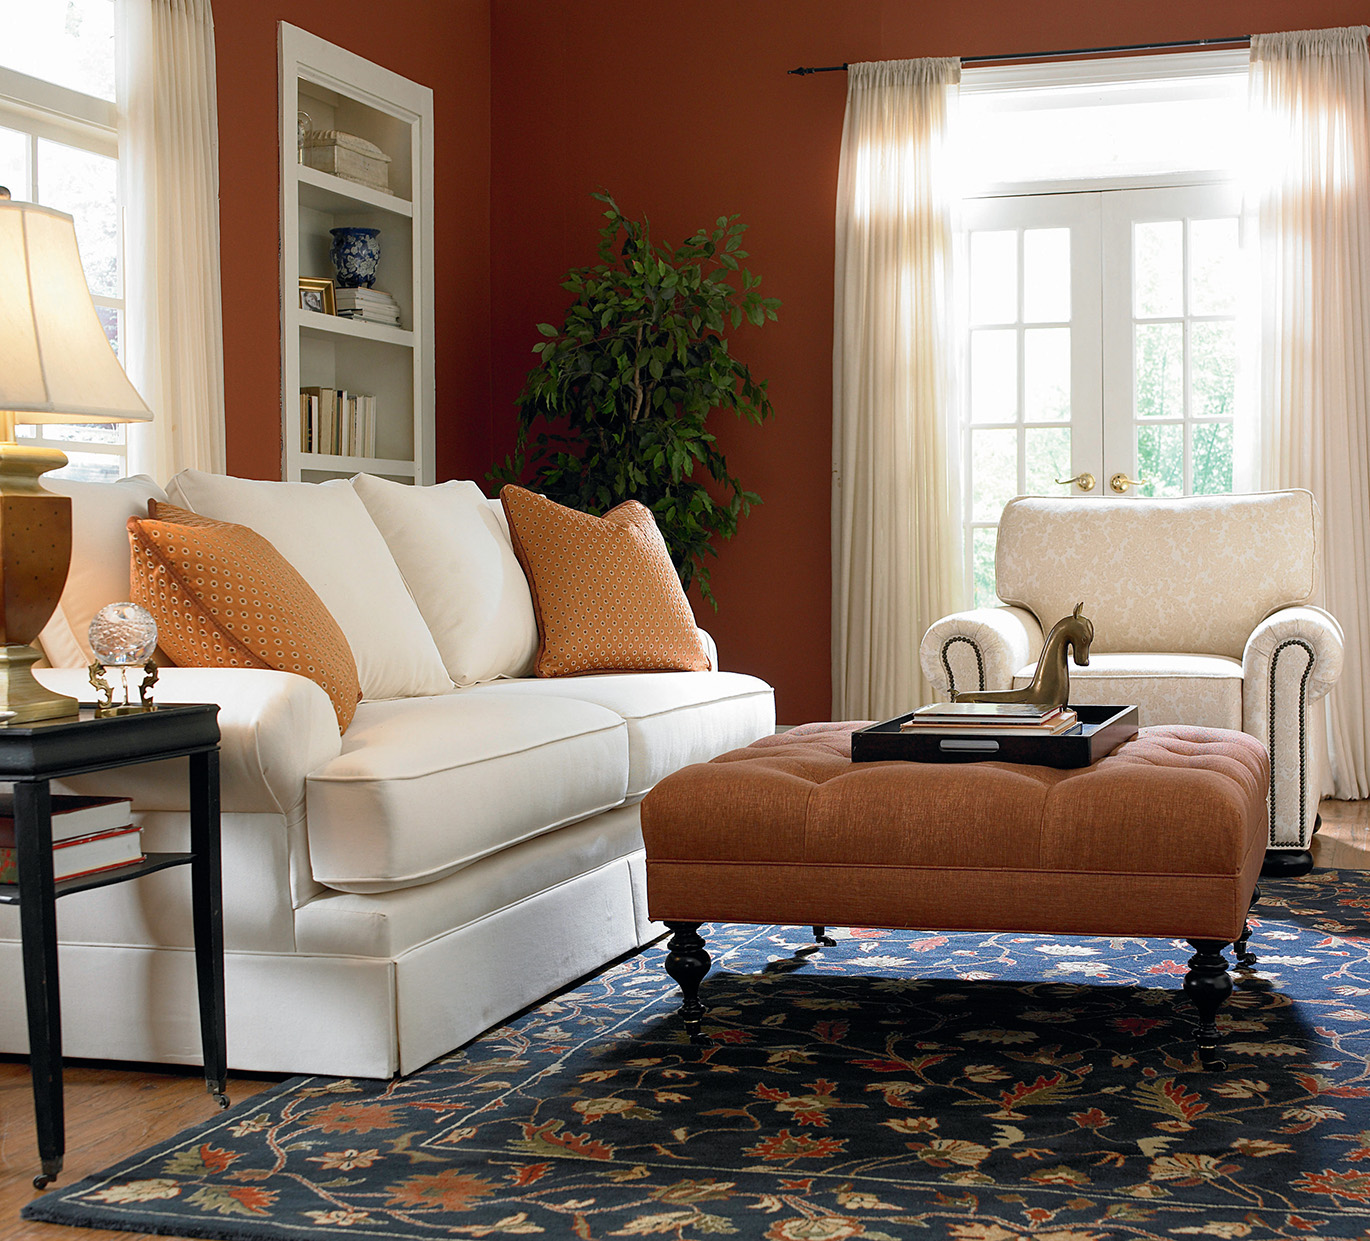 white sofa and chair with orange ottoman